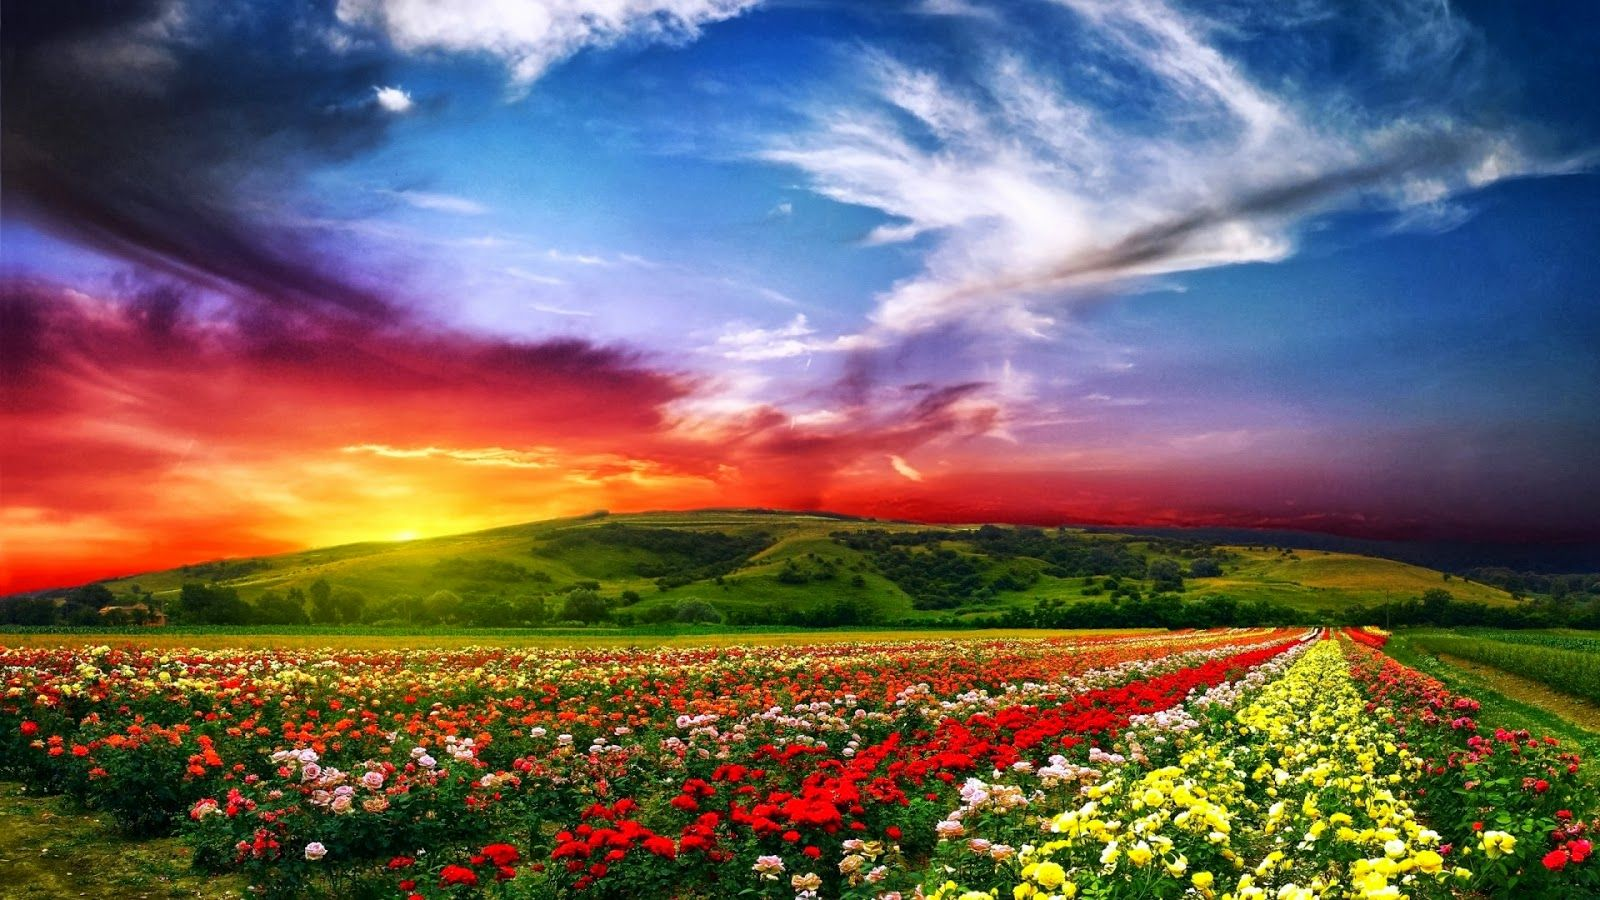 Full Hd Size Nature Wallpapers Free Downloads Full Hd High Res Nature Wallpapers For Laptop